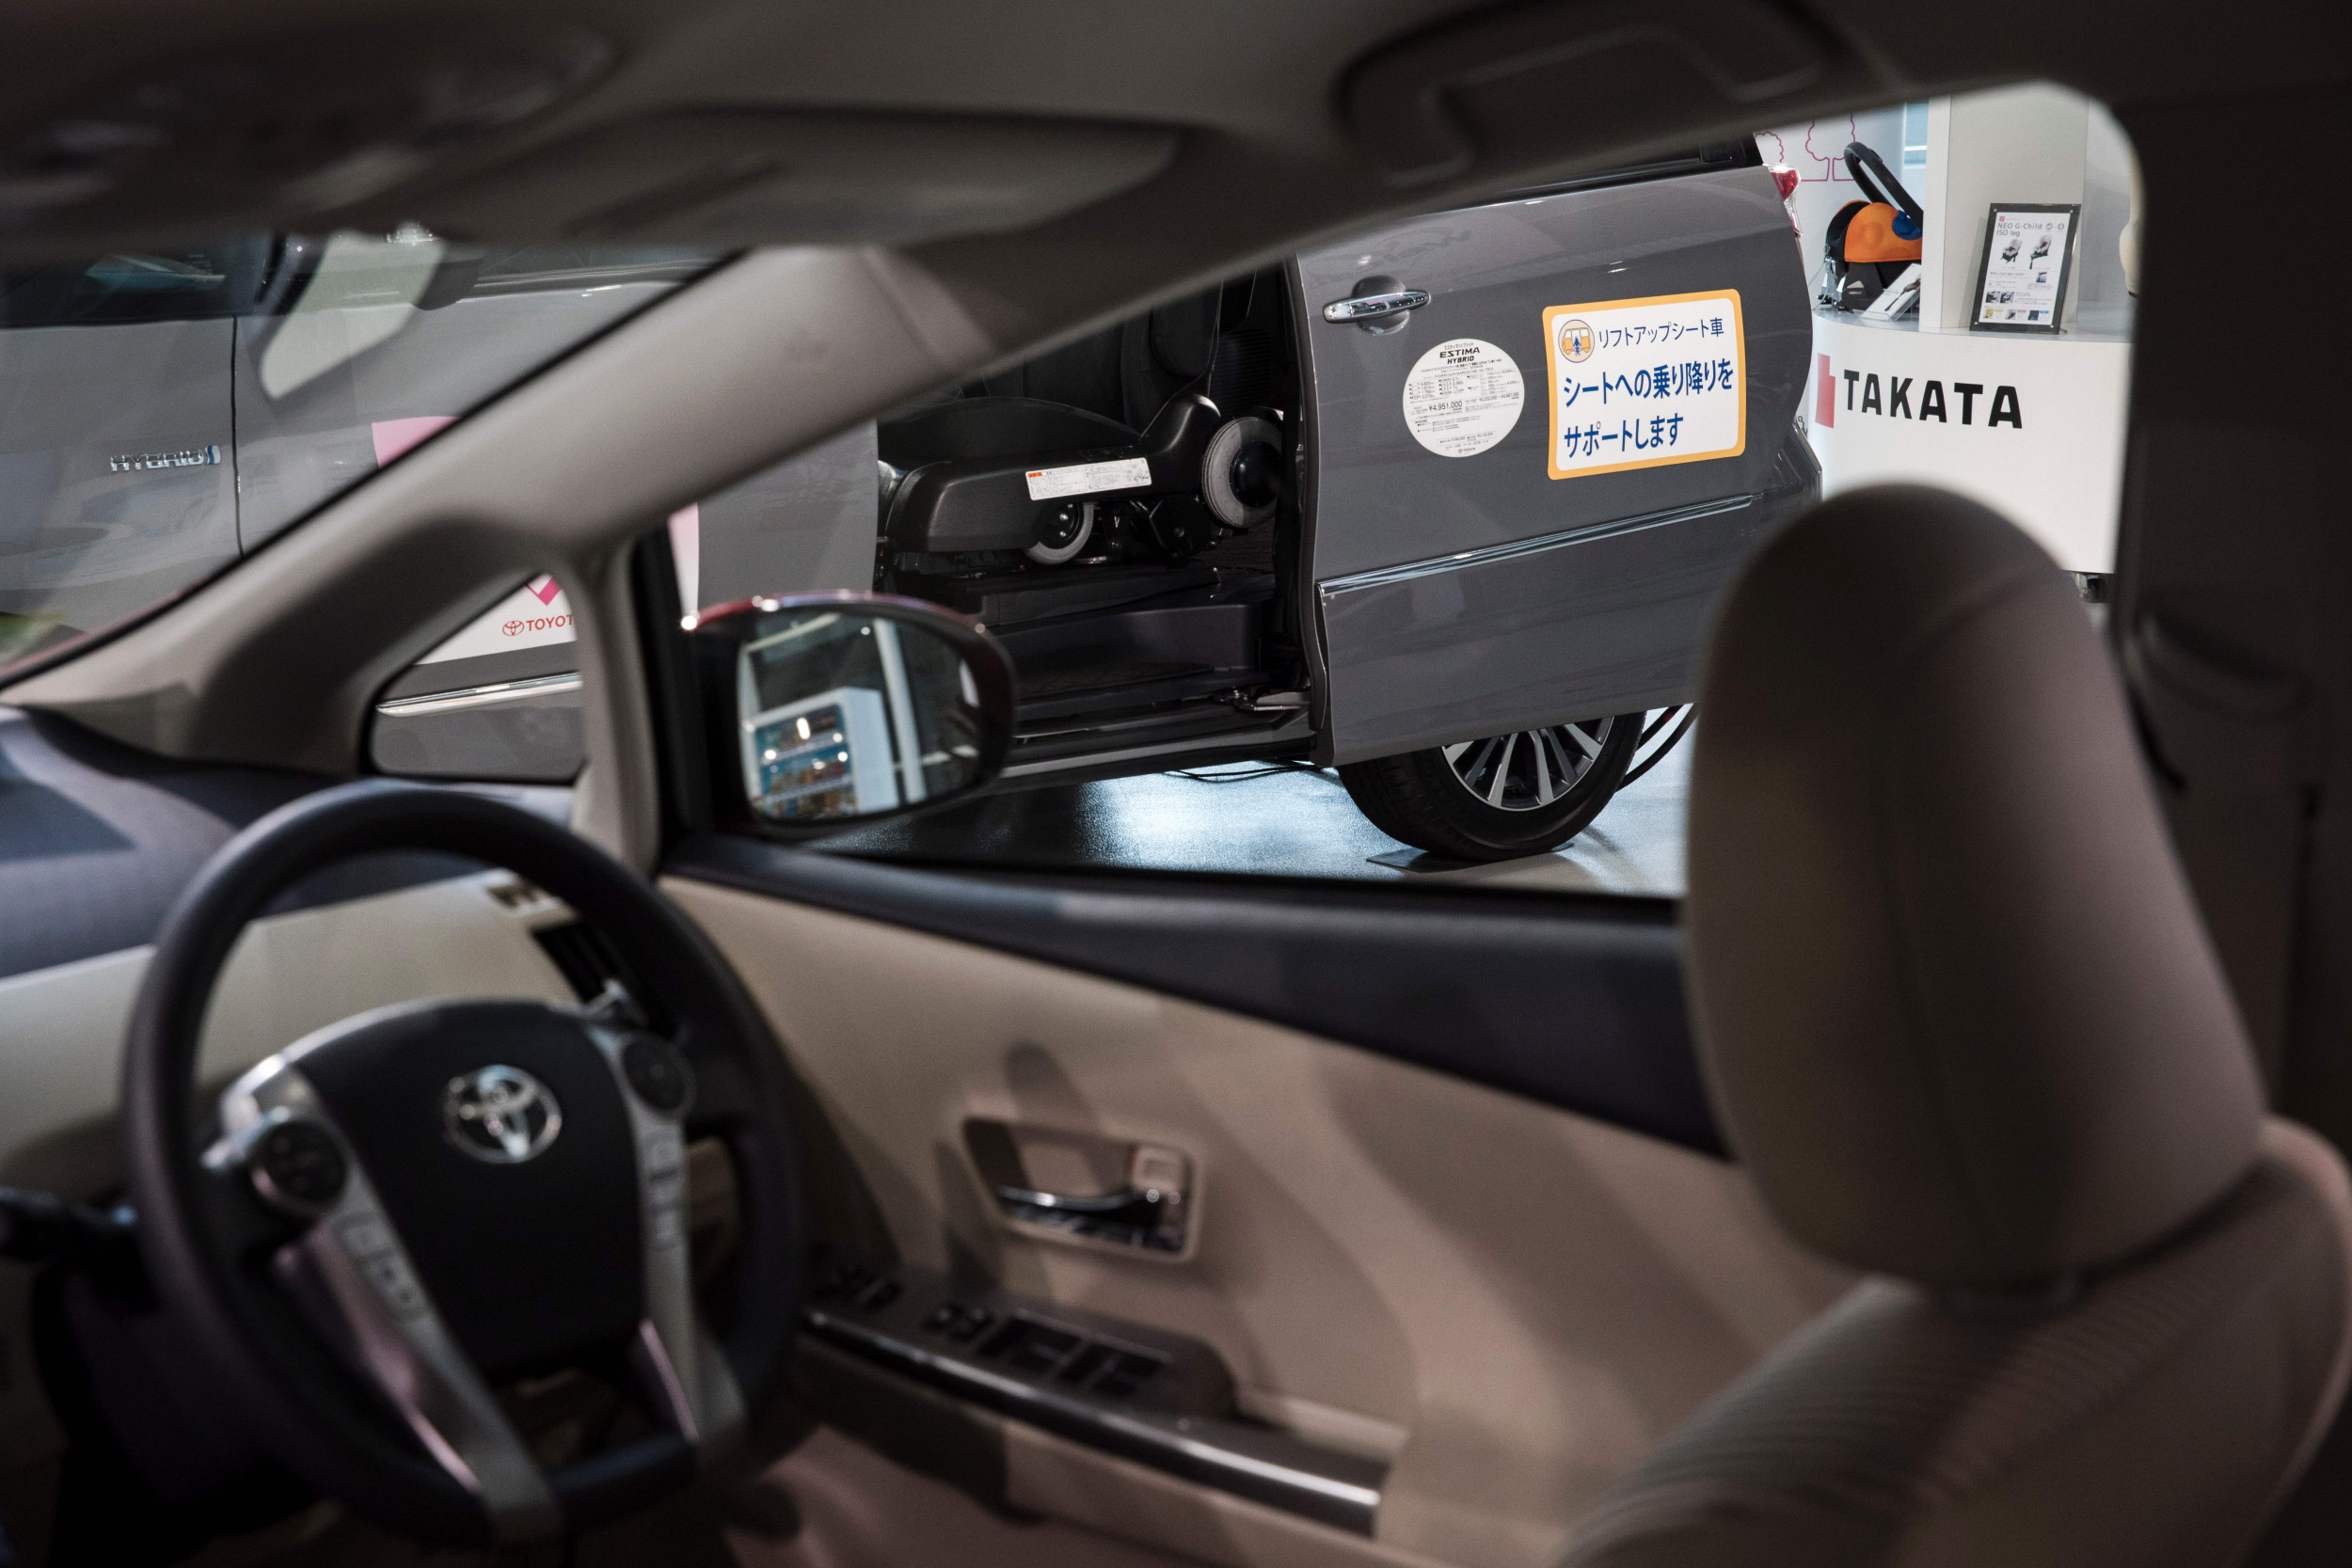 Takata Airbag Recall Bmw >> Takata Airbag Recall Honda Bmw Mitsubishi And Other Car